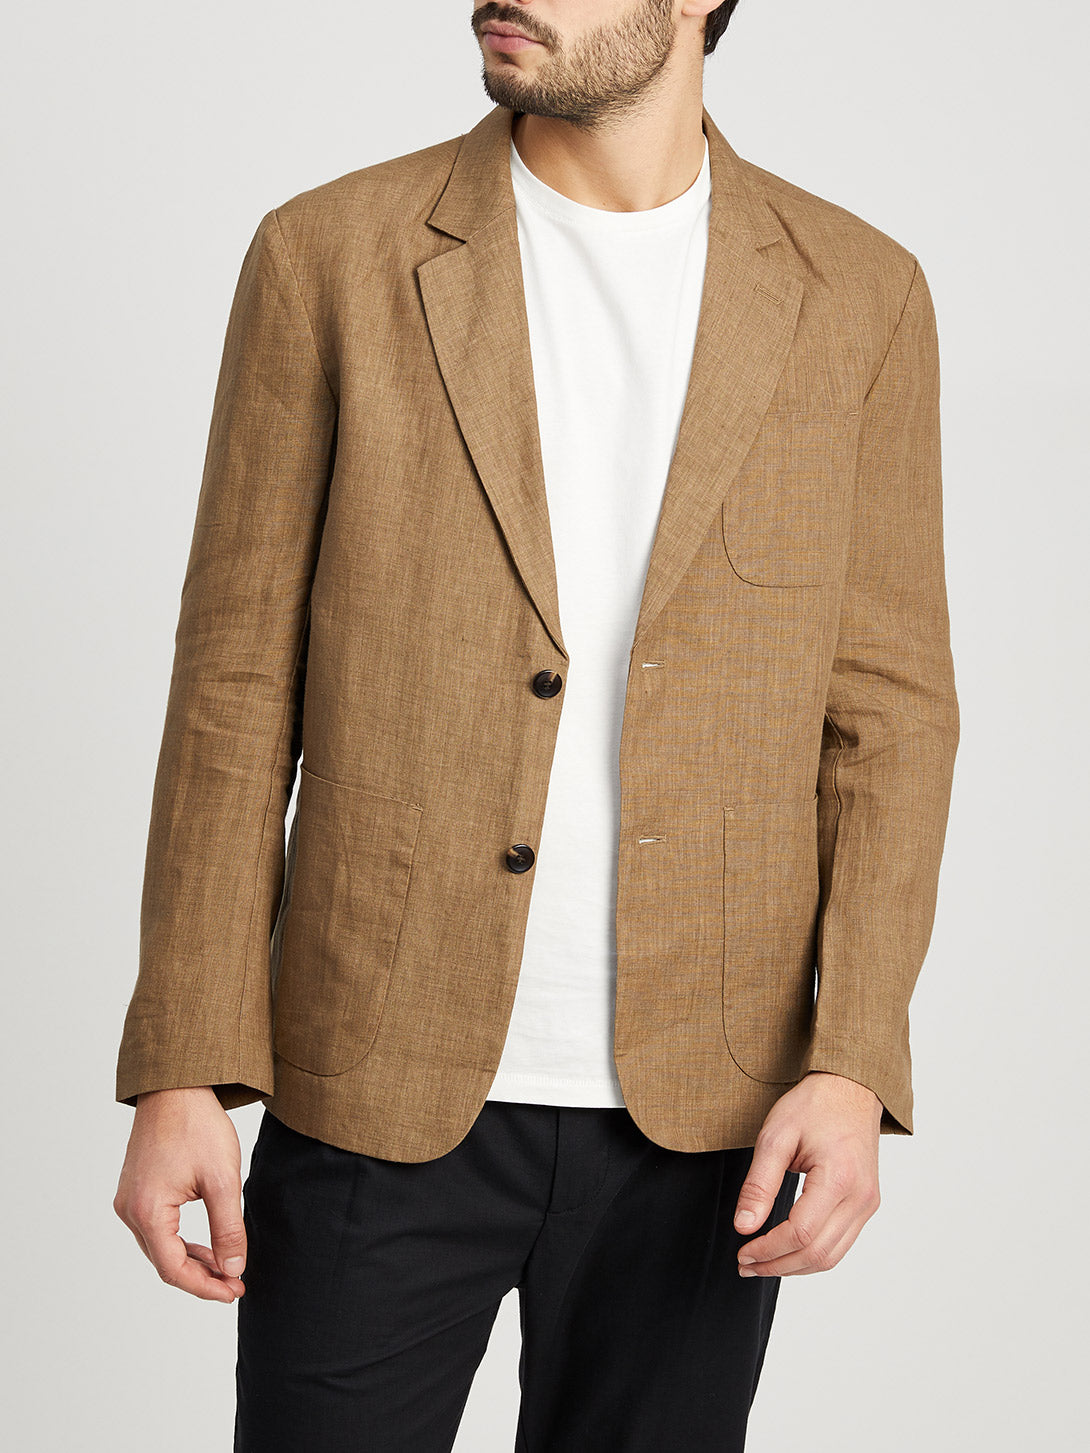 LIGHT BROWN blazers for men emery blazer ons clothing